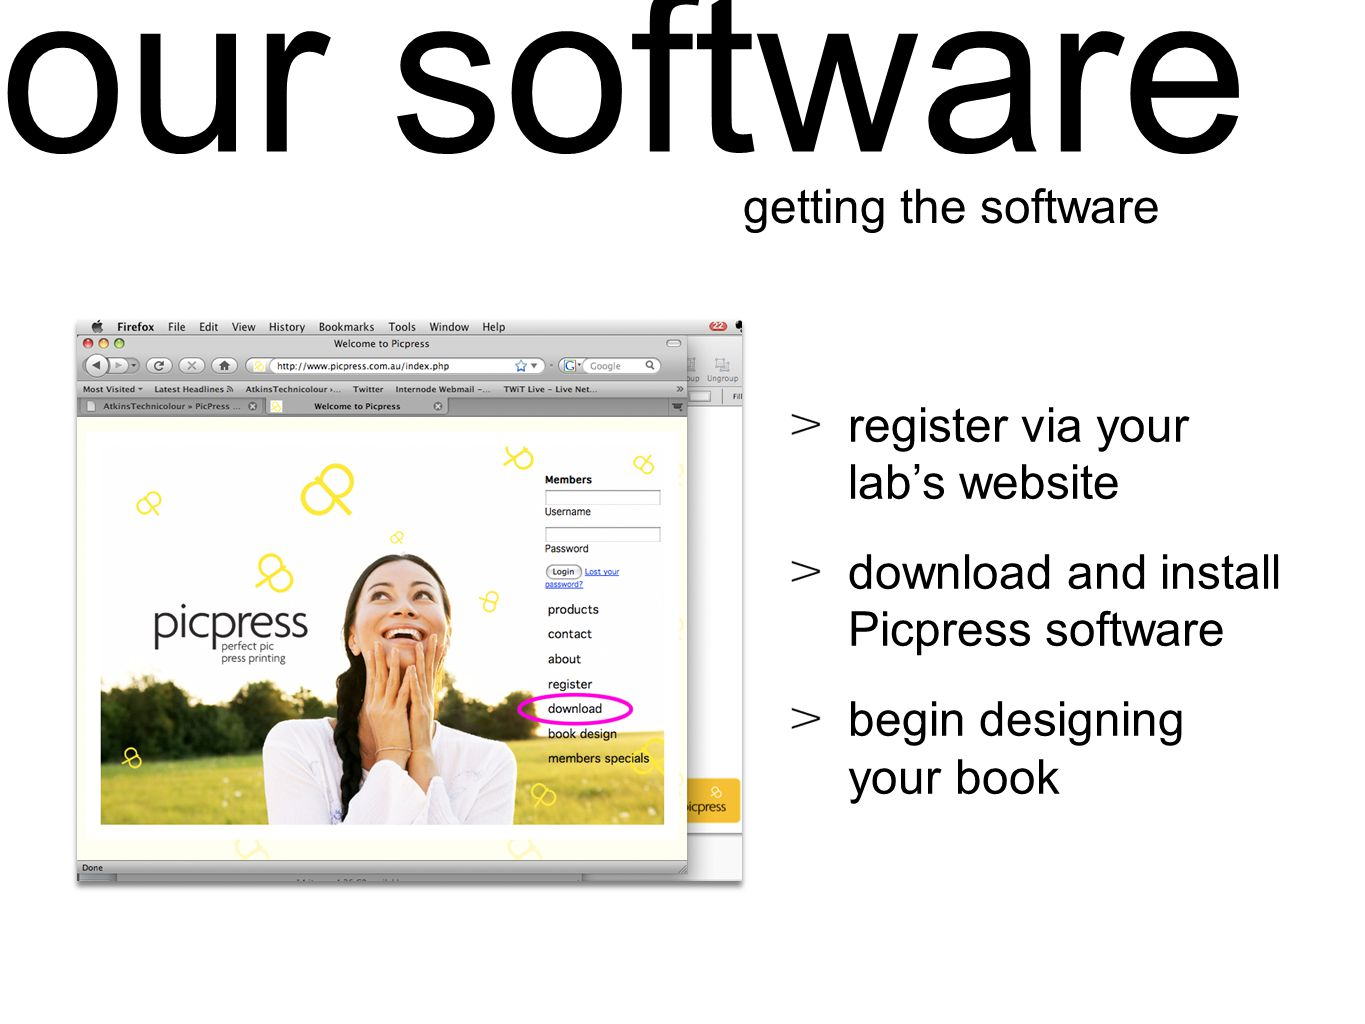 our software register via your labs website download and install Picpress software begin designing your book getting the software